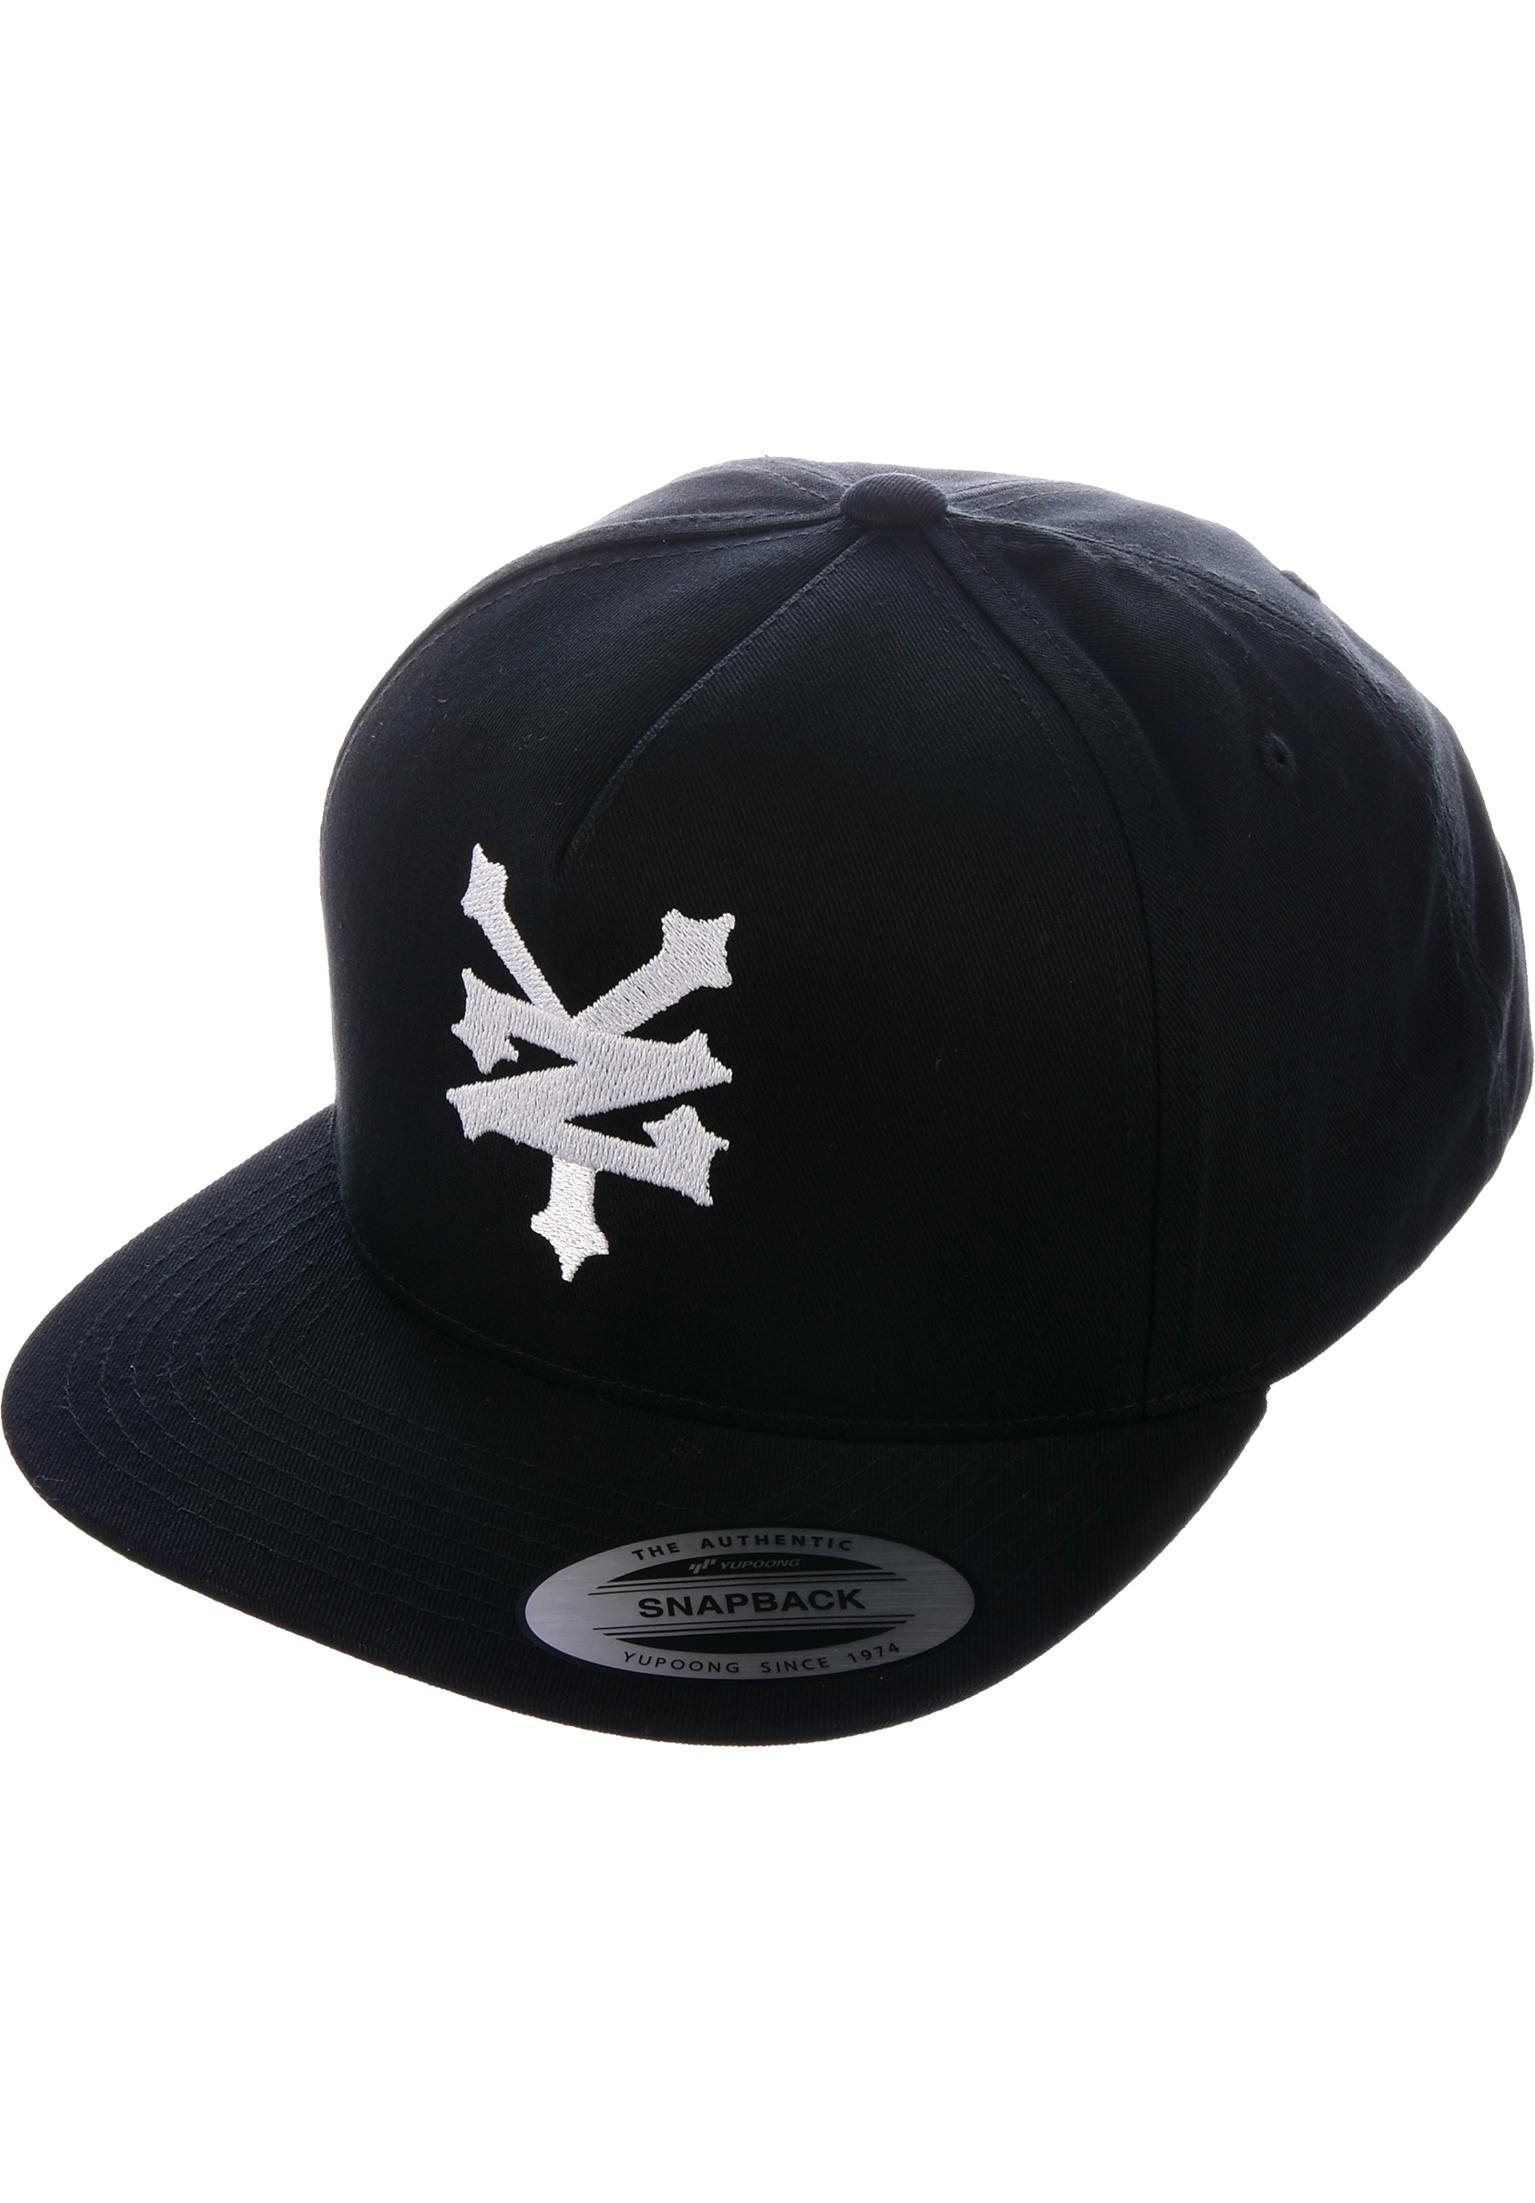 648d3f0afd9 Cracker Zoo York Caps in black for Men